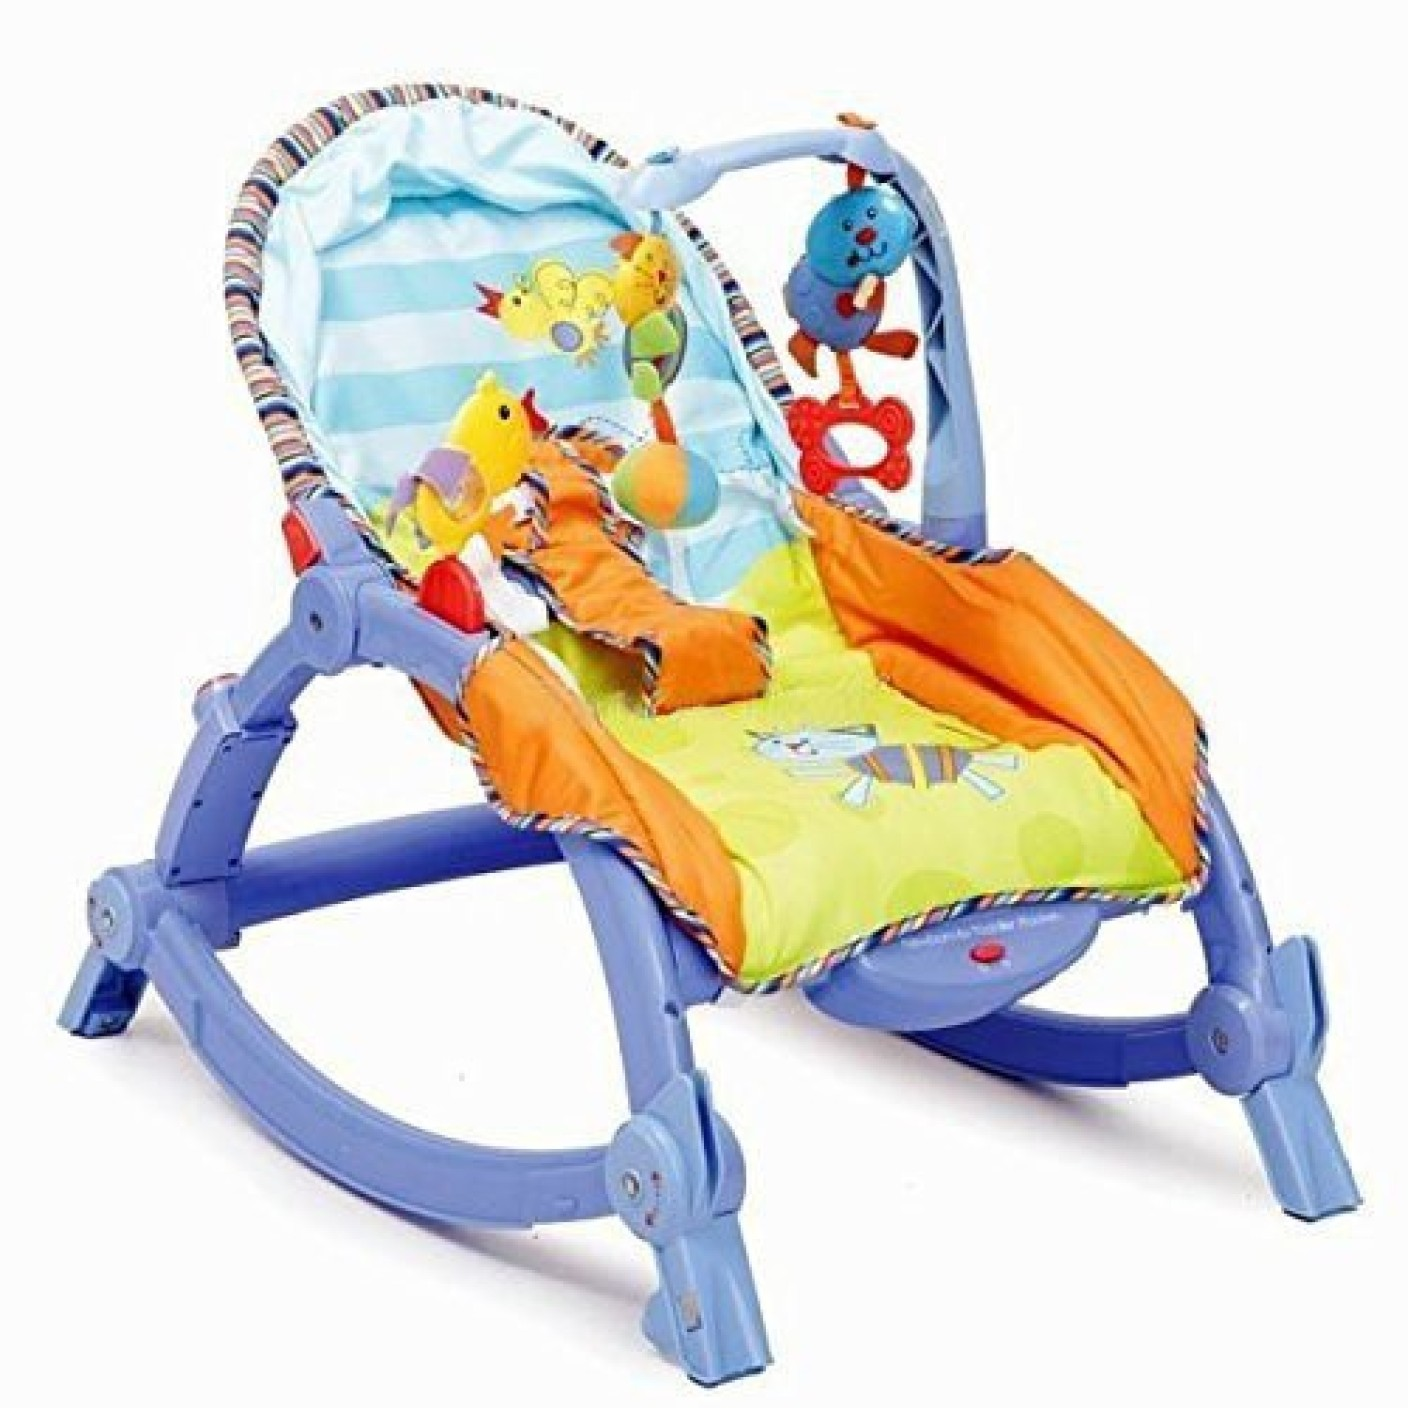 Adaraxx Newborn To Toddler Portable Baby Rocker Newborn To